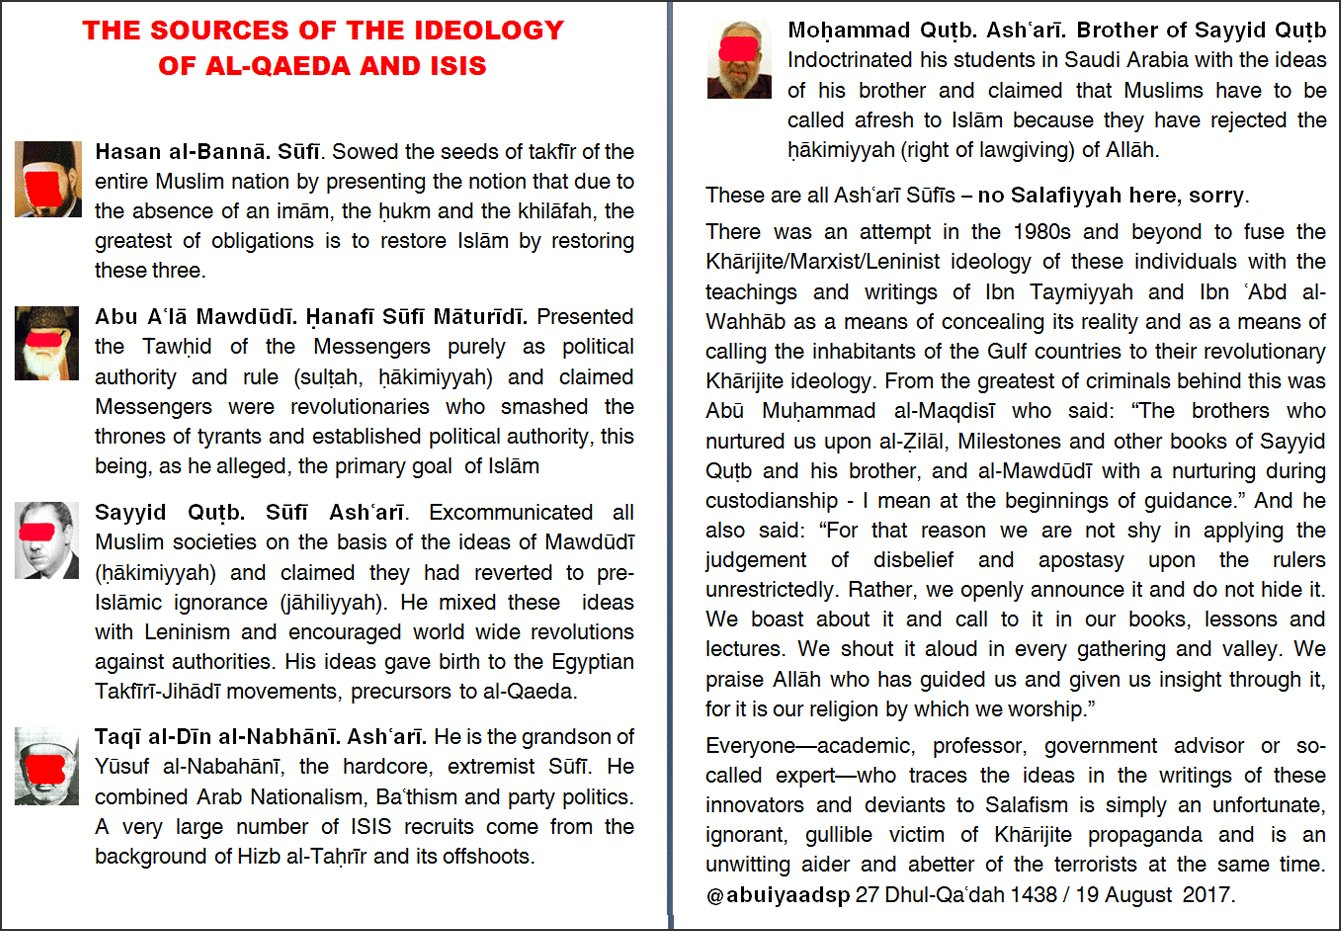 Sources of the Core Ideology of al-Qaeda and ISIS: Sufi Ashari Maturidis Combining European Revolutionary Ideology with Kharijite Doctrine. https://t.co/L6AoOpnWEh